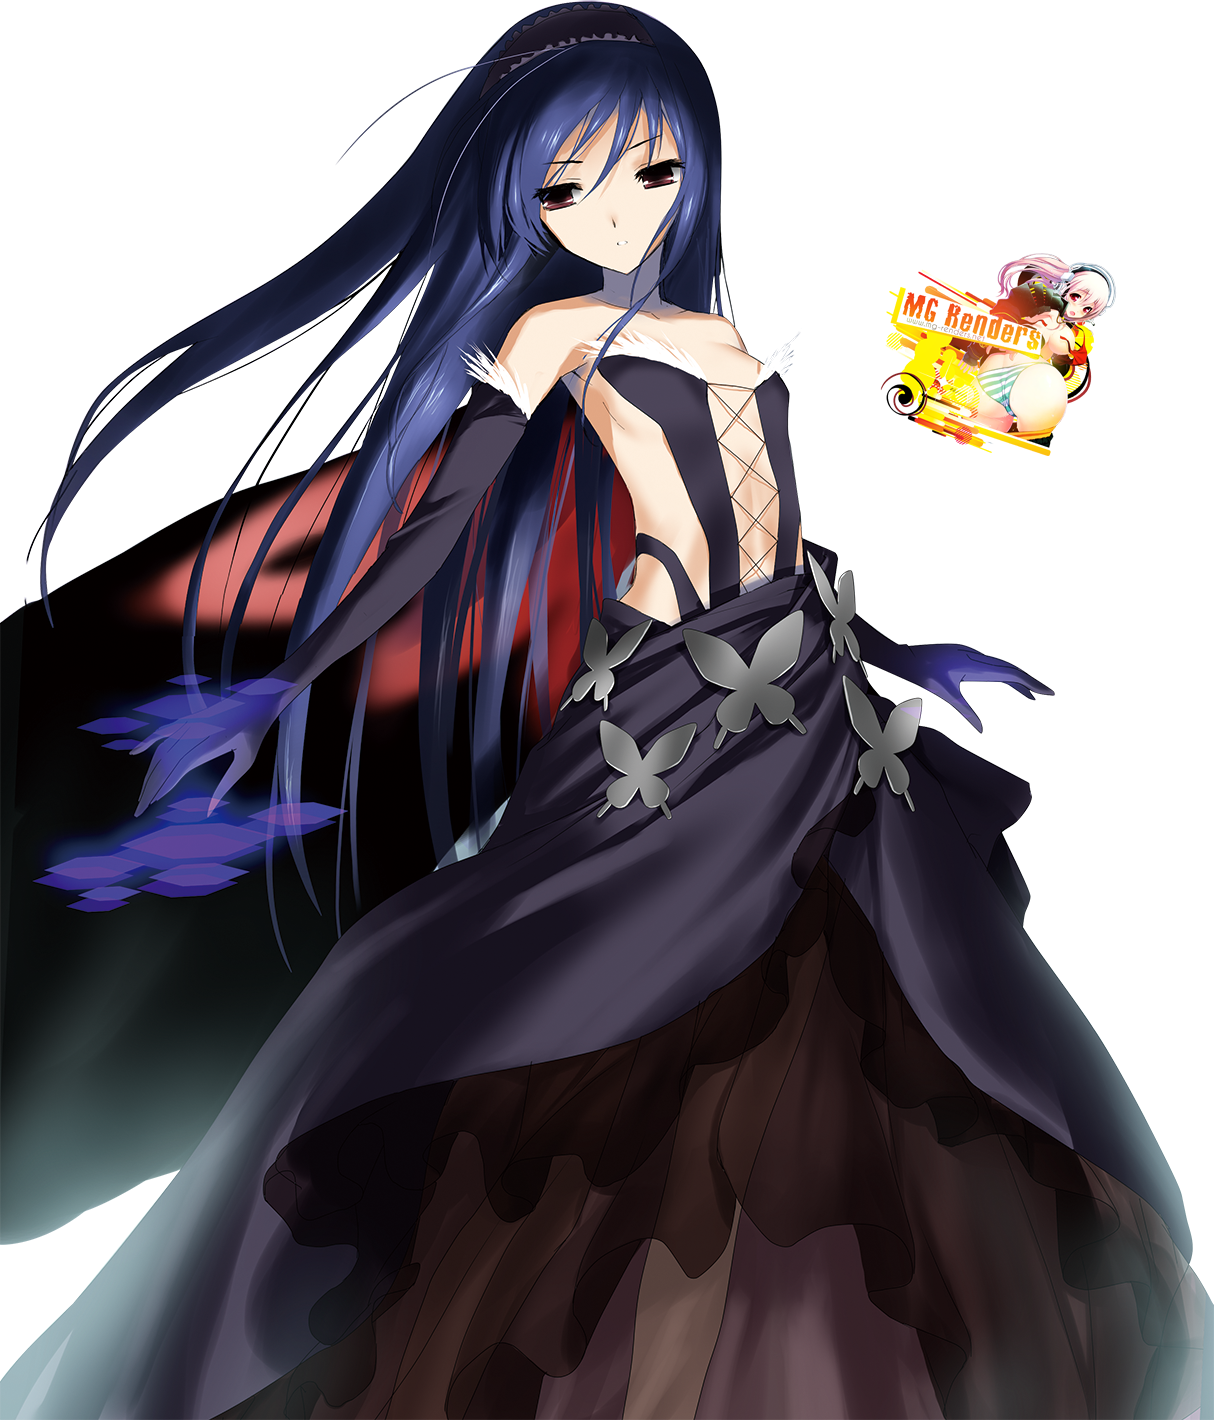 Tags: Anime, Render,  Accel World,  kuroyukihime, PNG, Image, Picture